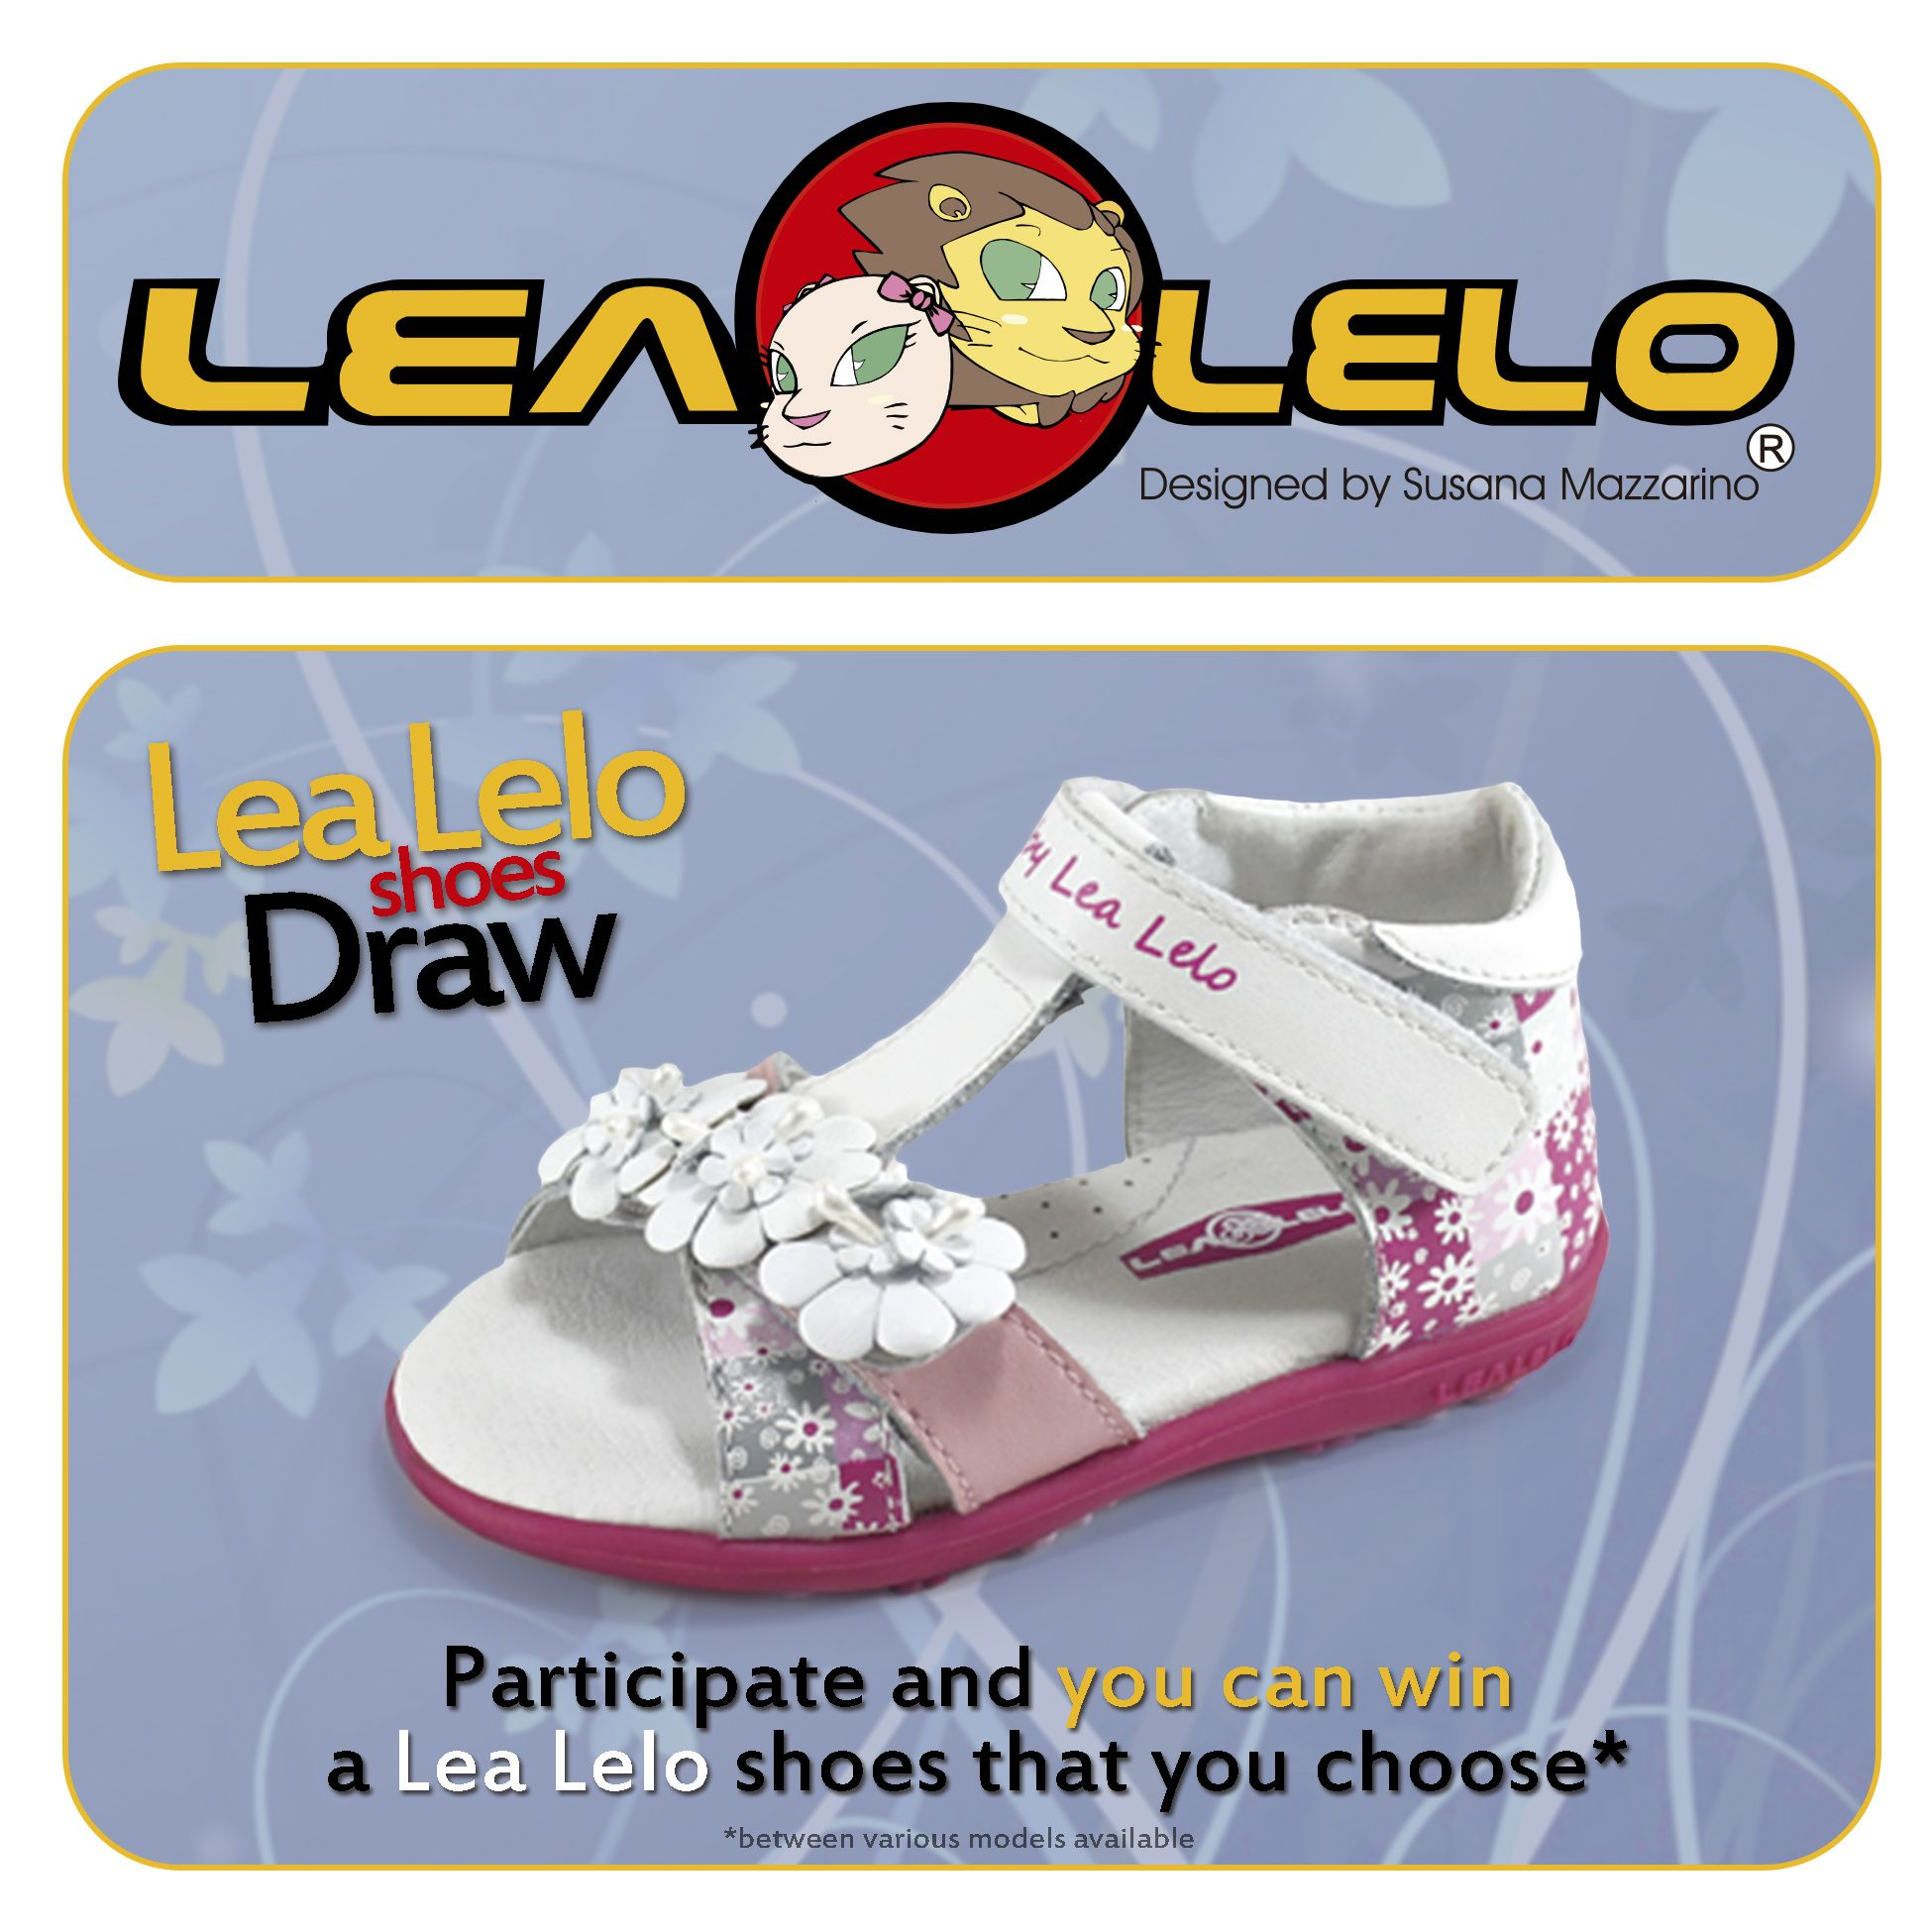 Who wants a Lea Lelo shoes for free?